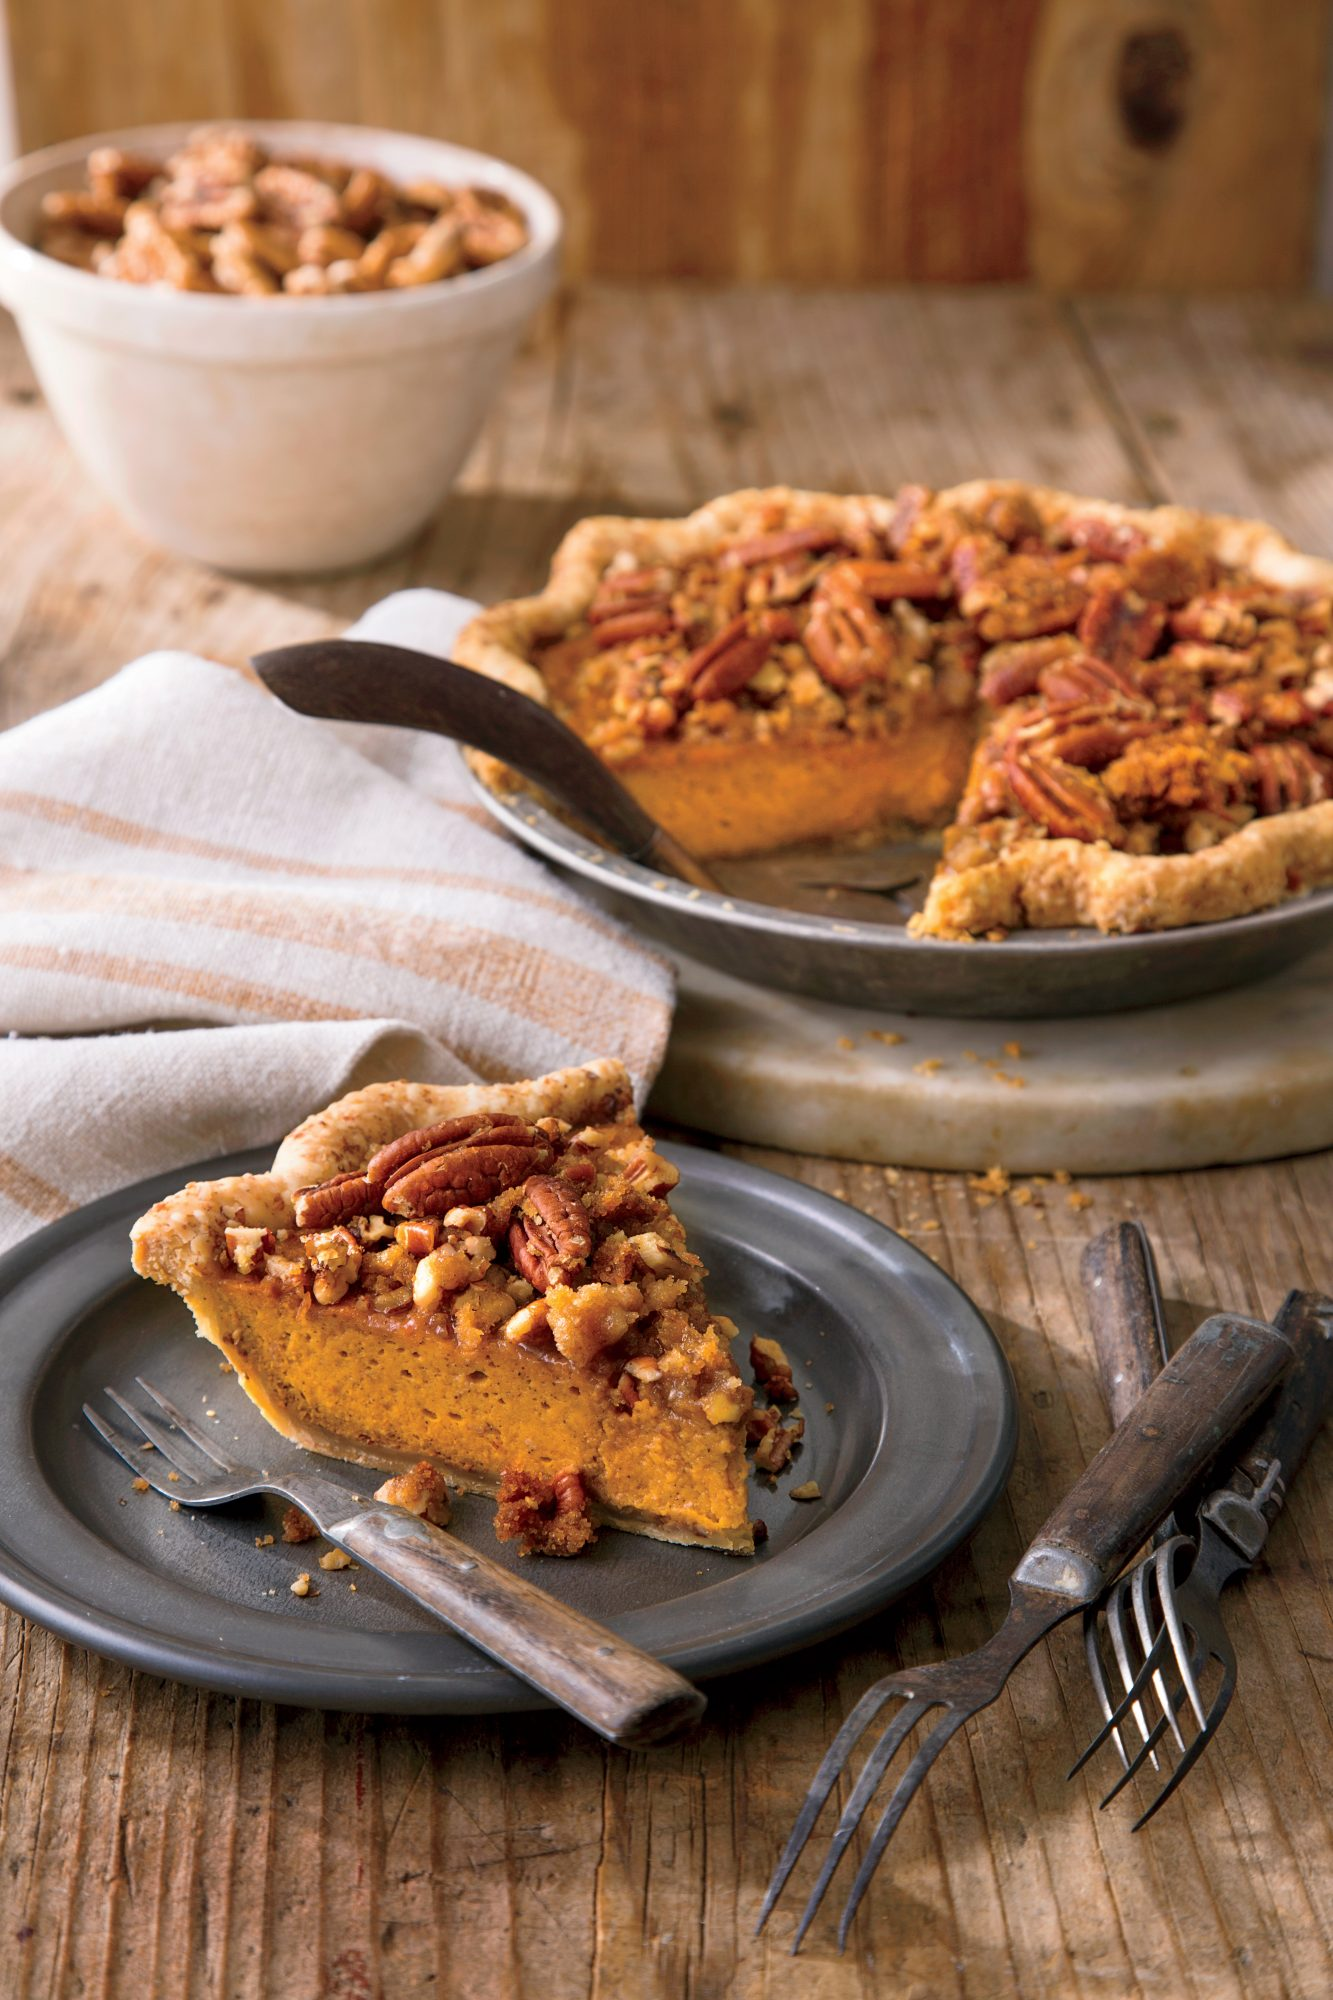 What Can You Make With Pecans And Pumpkin